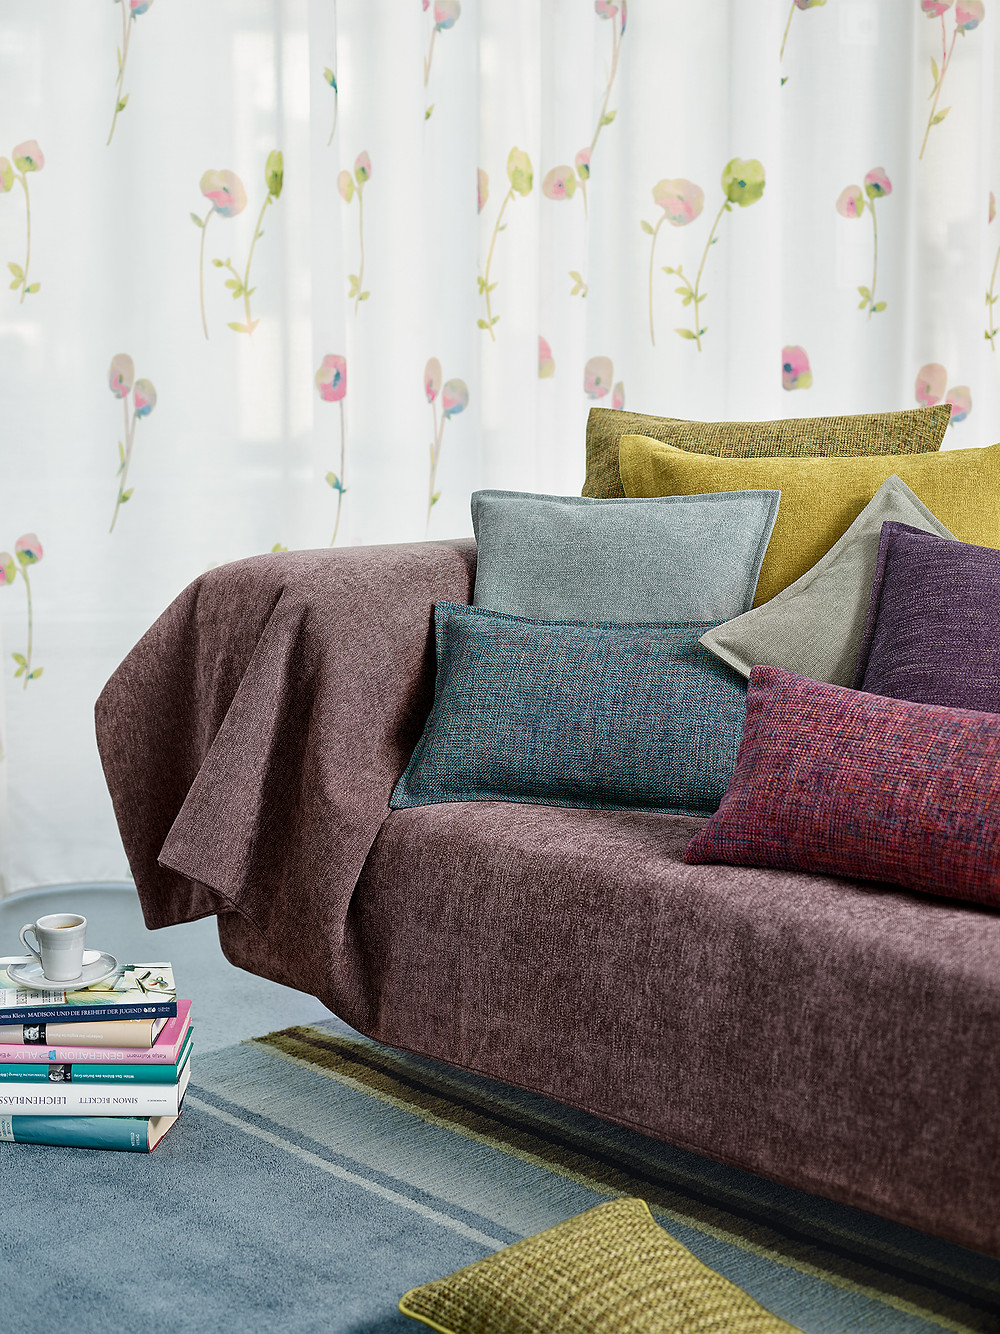 Custom-made curtains in Hong Kong, curtain fabric, upholstery and cushions